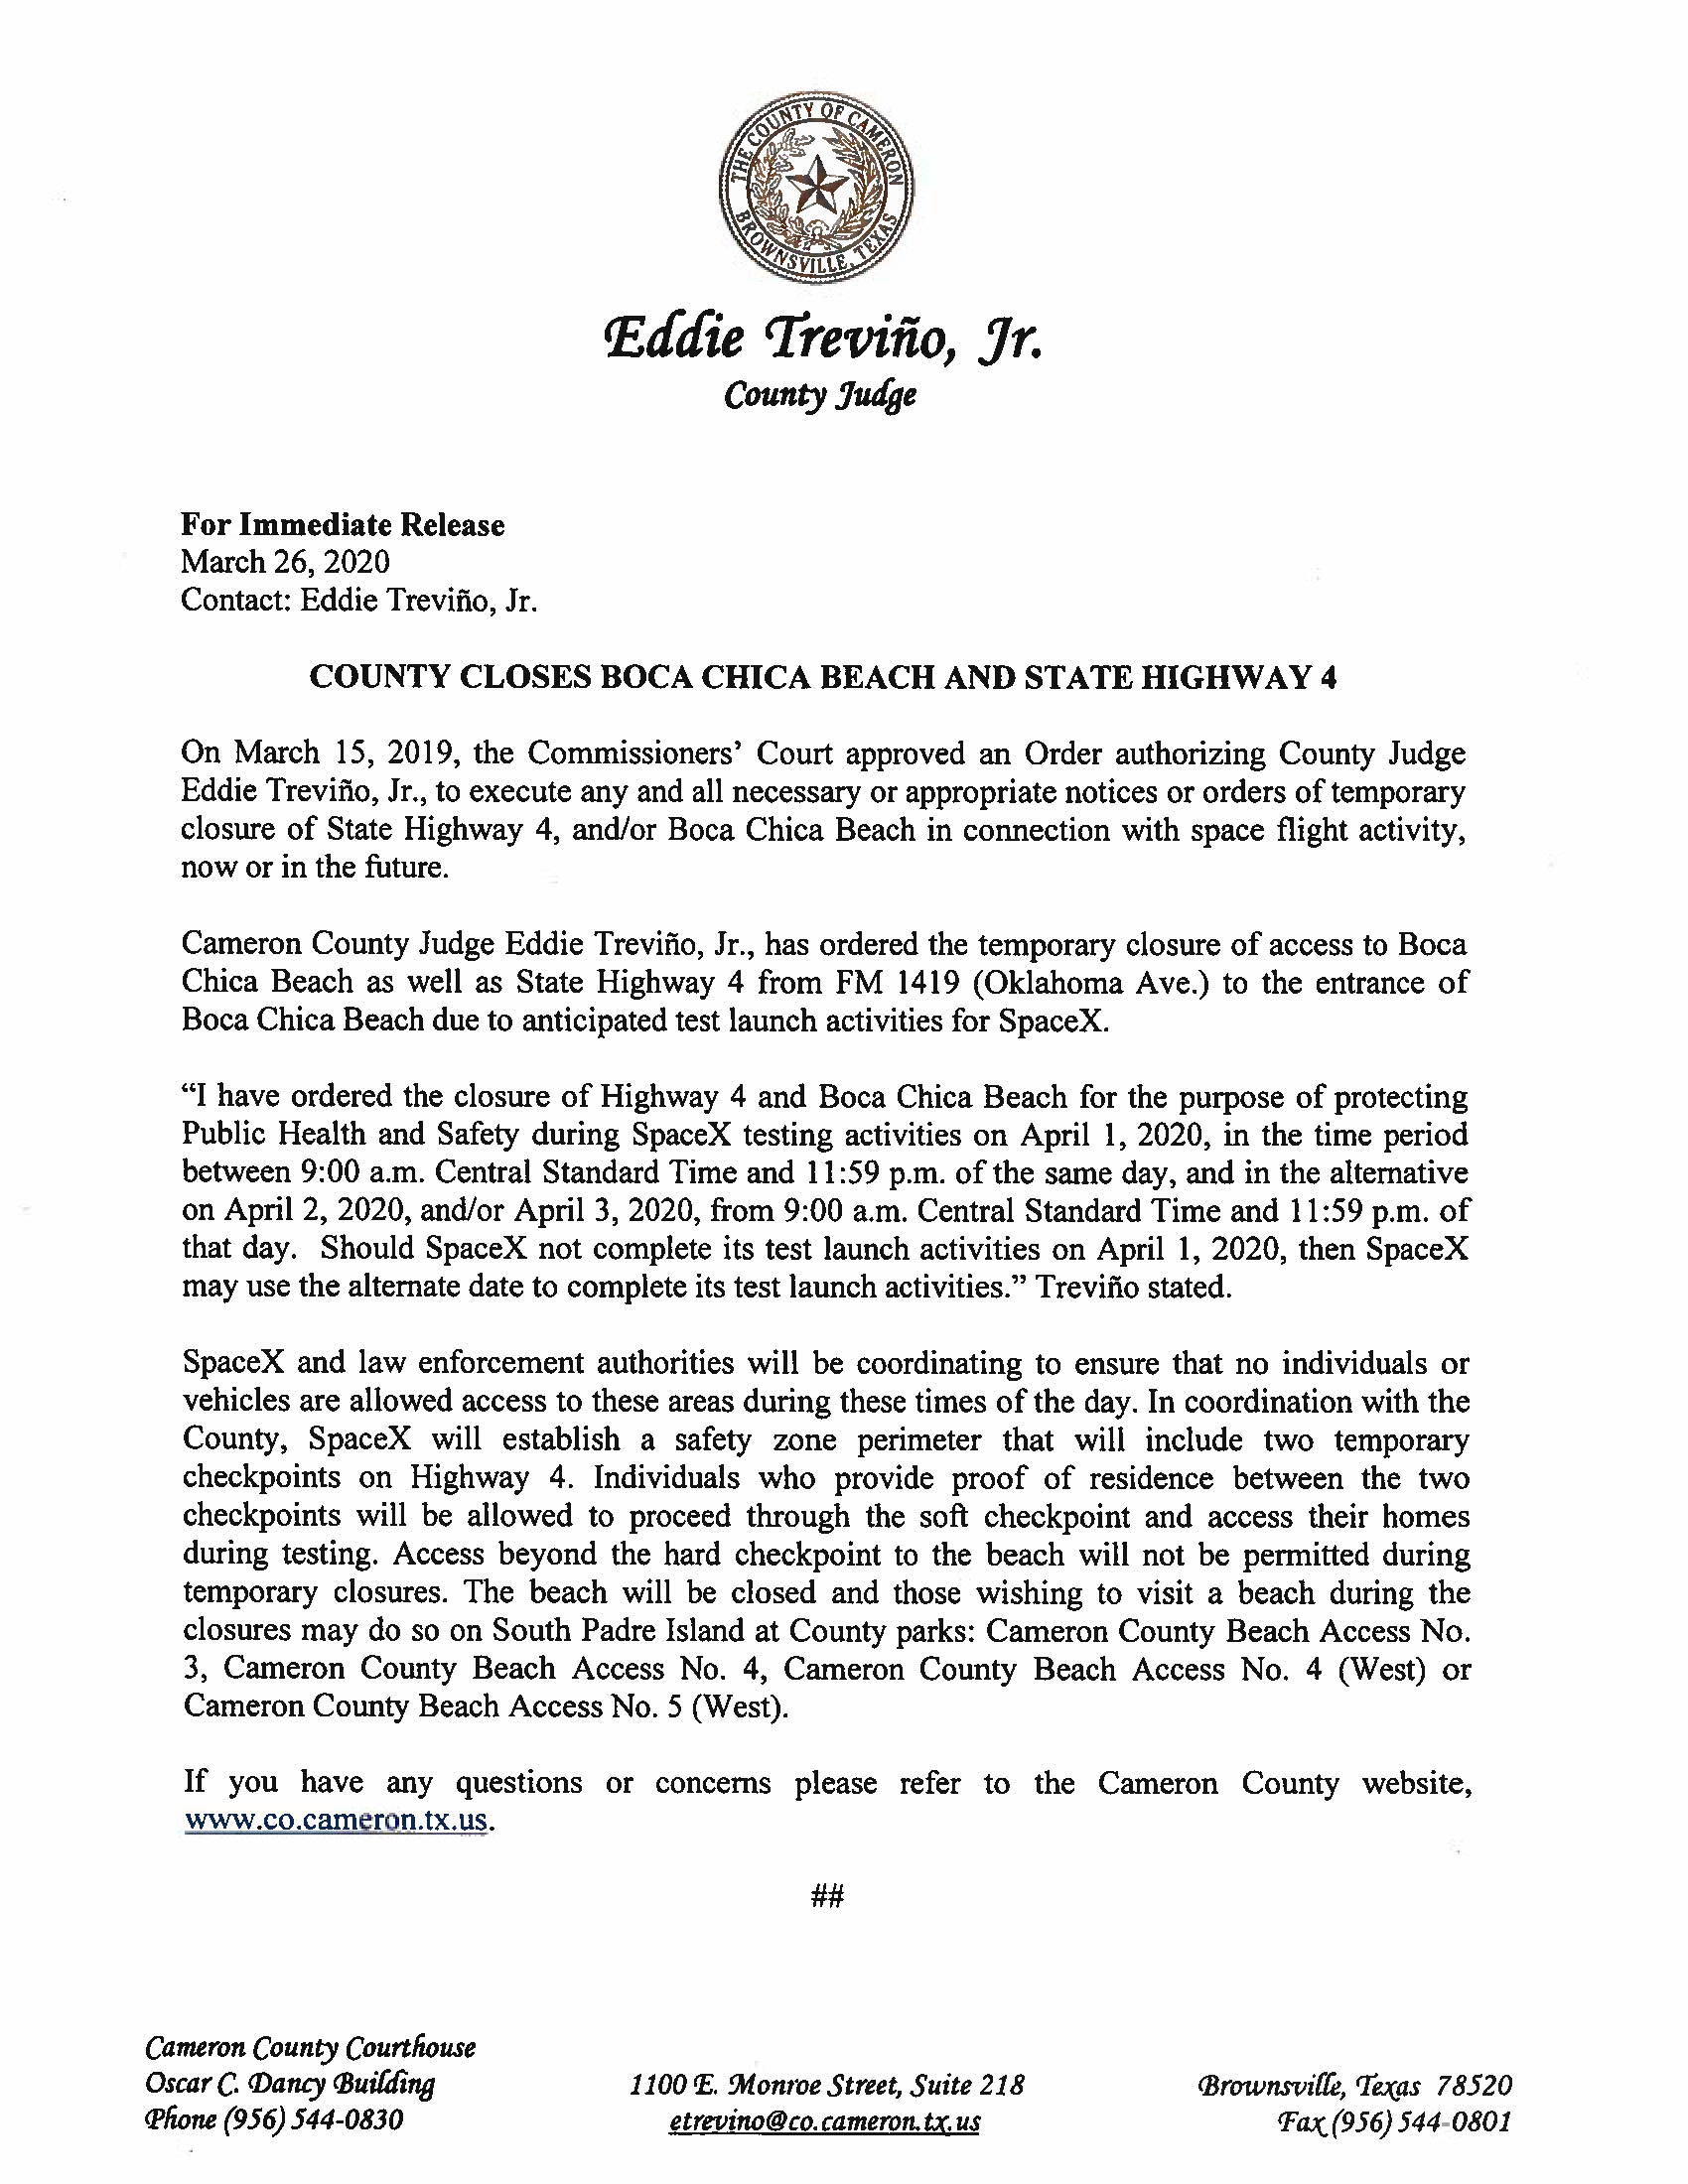 Press Release English Spanish For 04.01.2020 For Boca Chica Beach And Road Closure Page 1